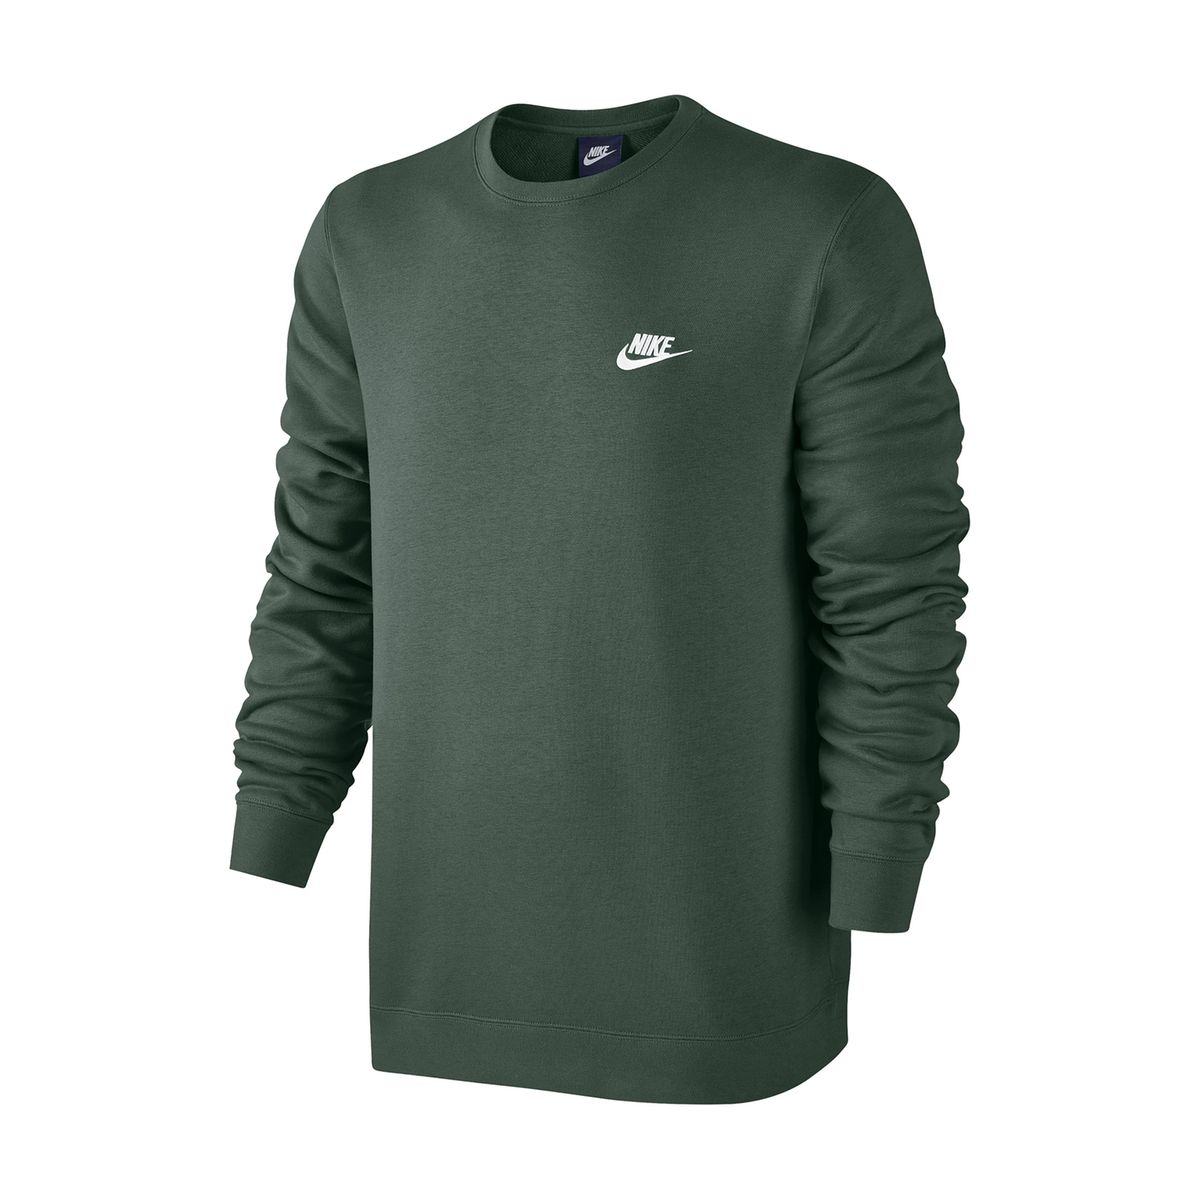 Sweat Col Rond, Manches Longues - Taille